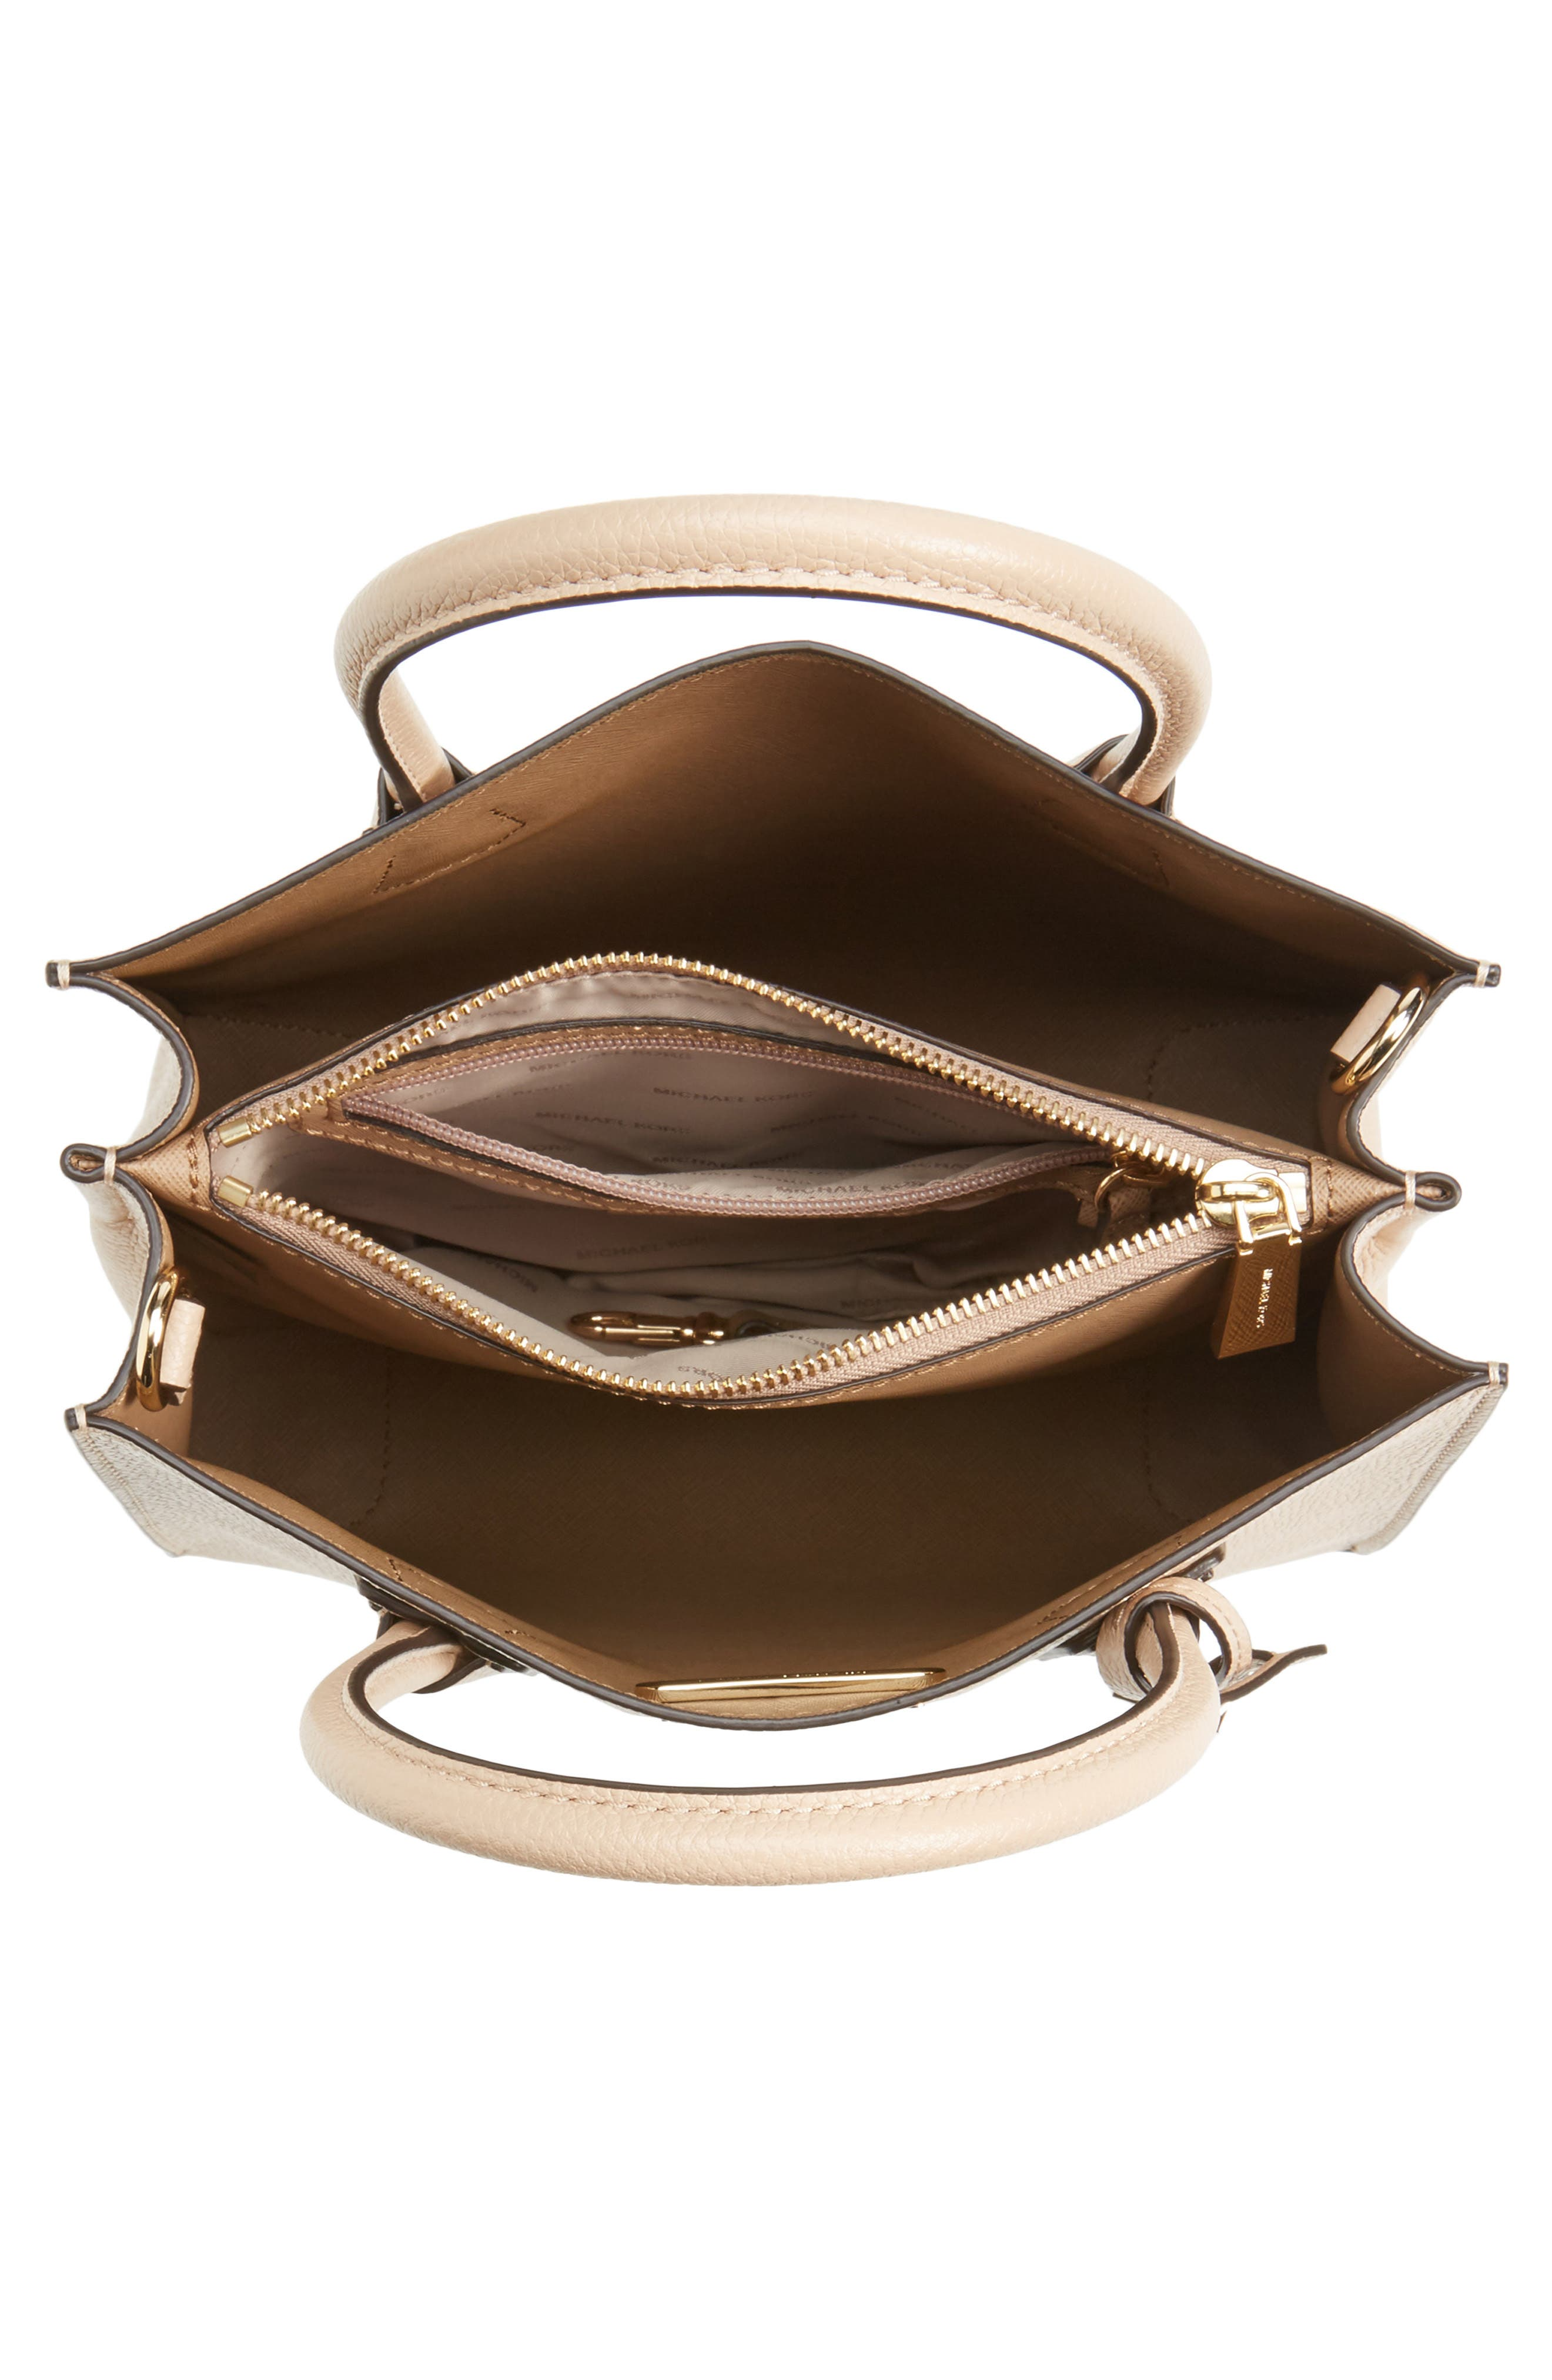 'Medium Mercer' Leather Tote,                             Alternate thumbnail 6, color,                             Oyster